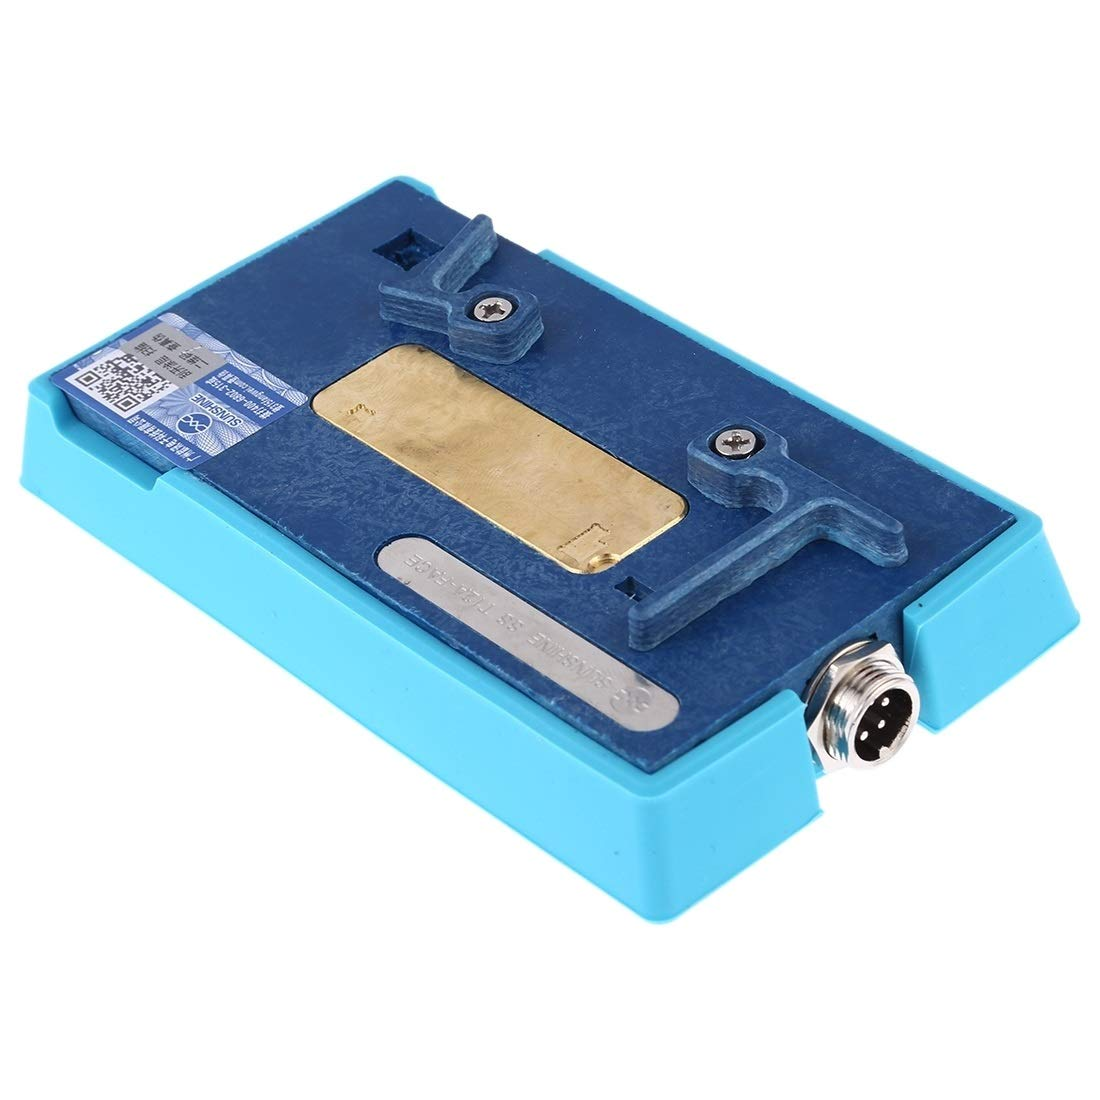 Hyx Repair Tool SS-T12A-FACE CPU Motherboard Heating Table Repair Disassembly Platform